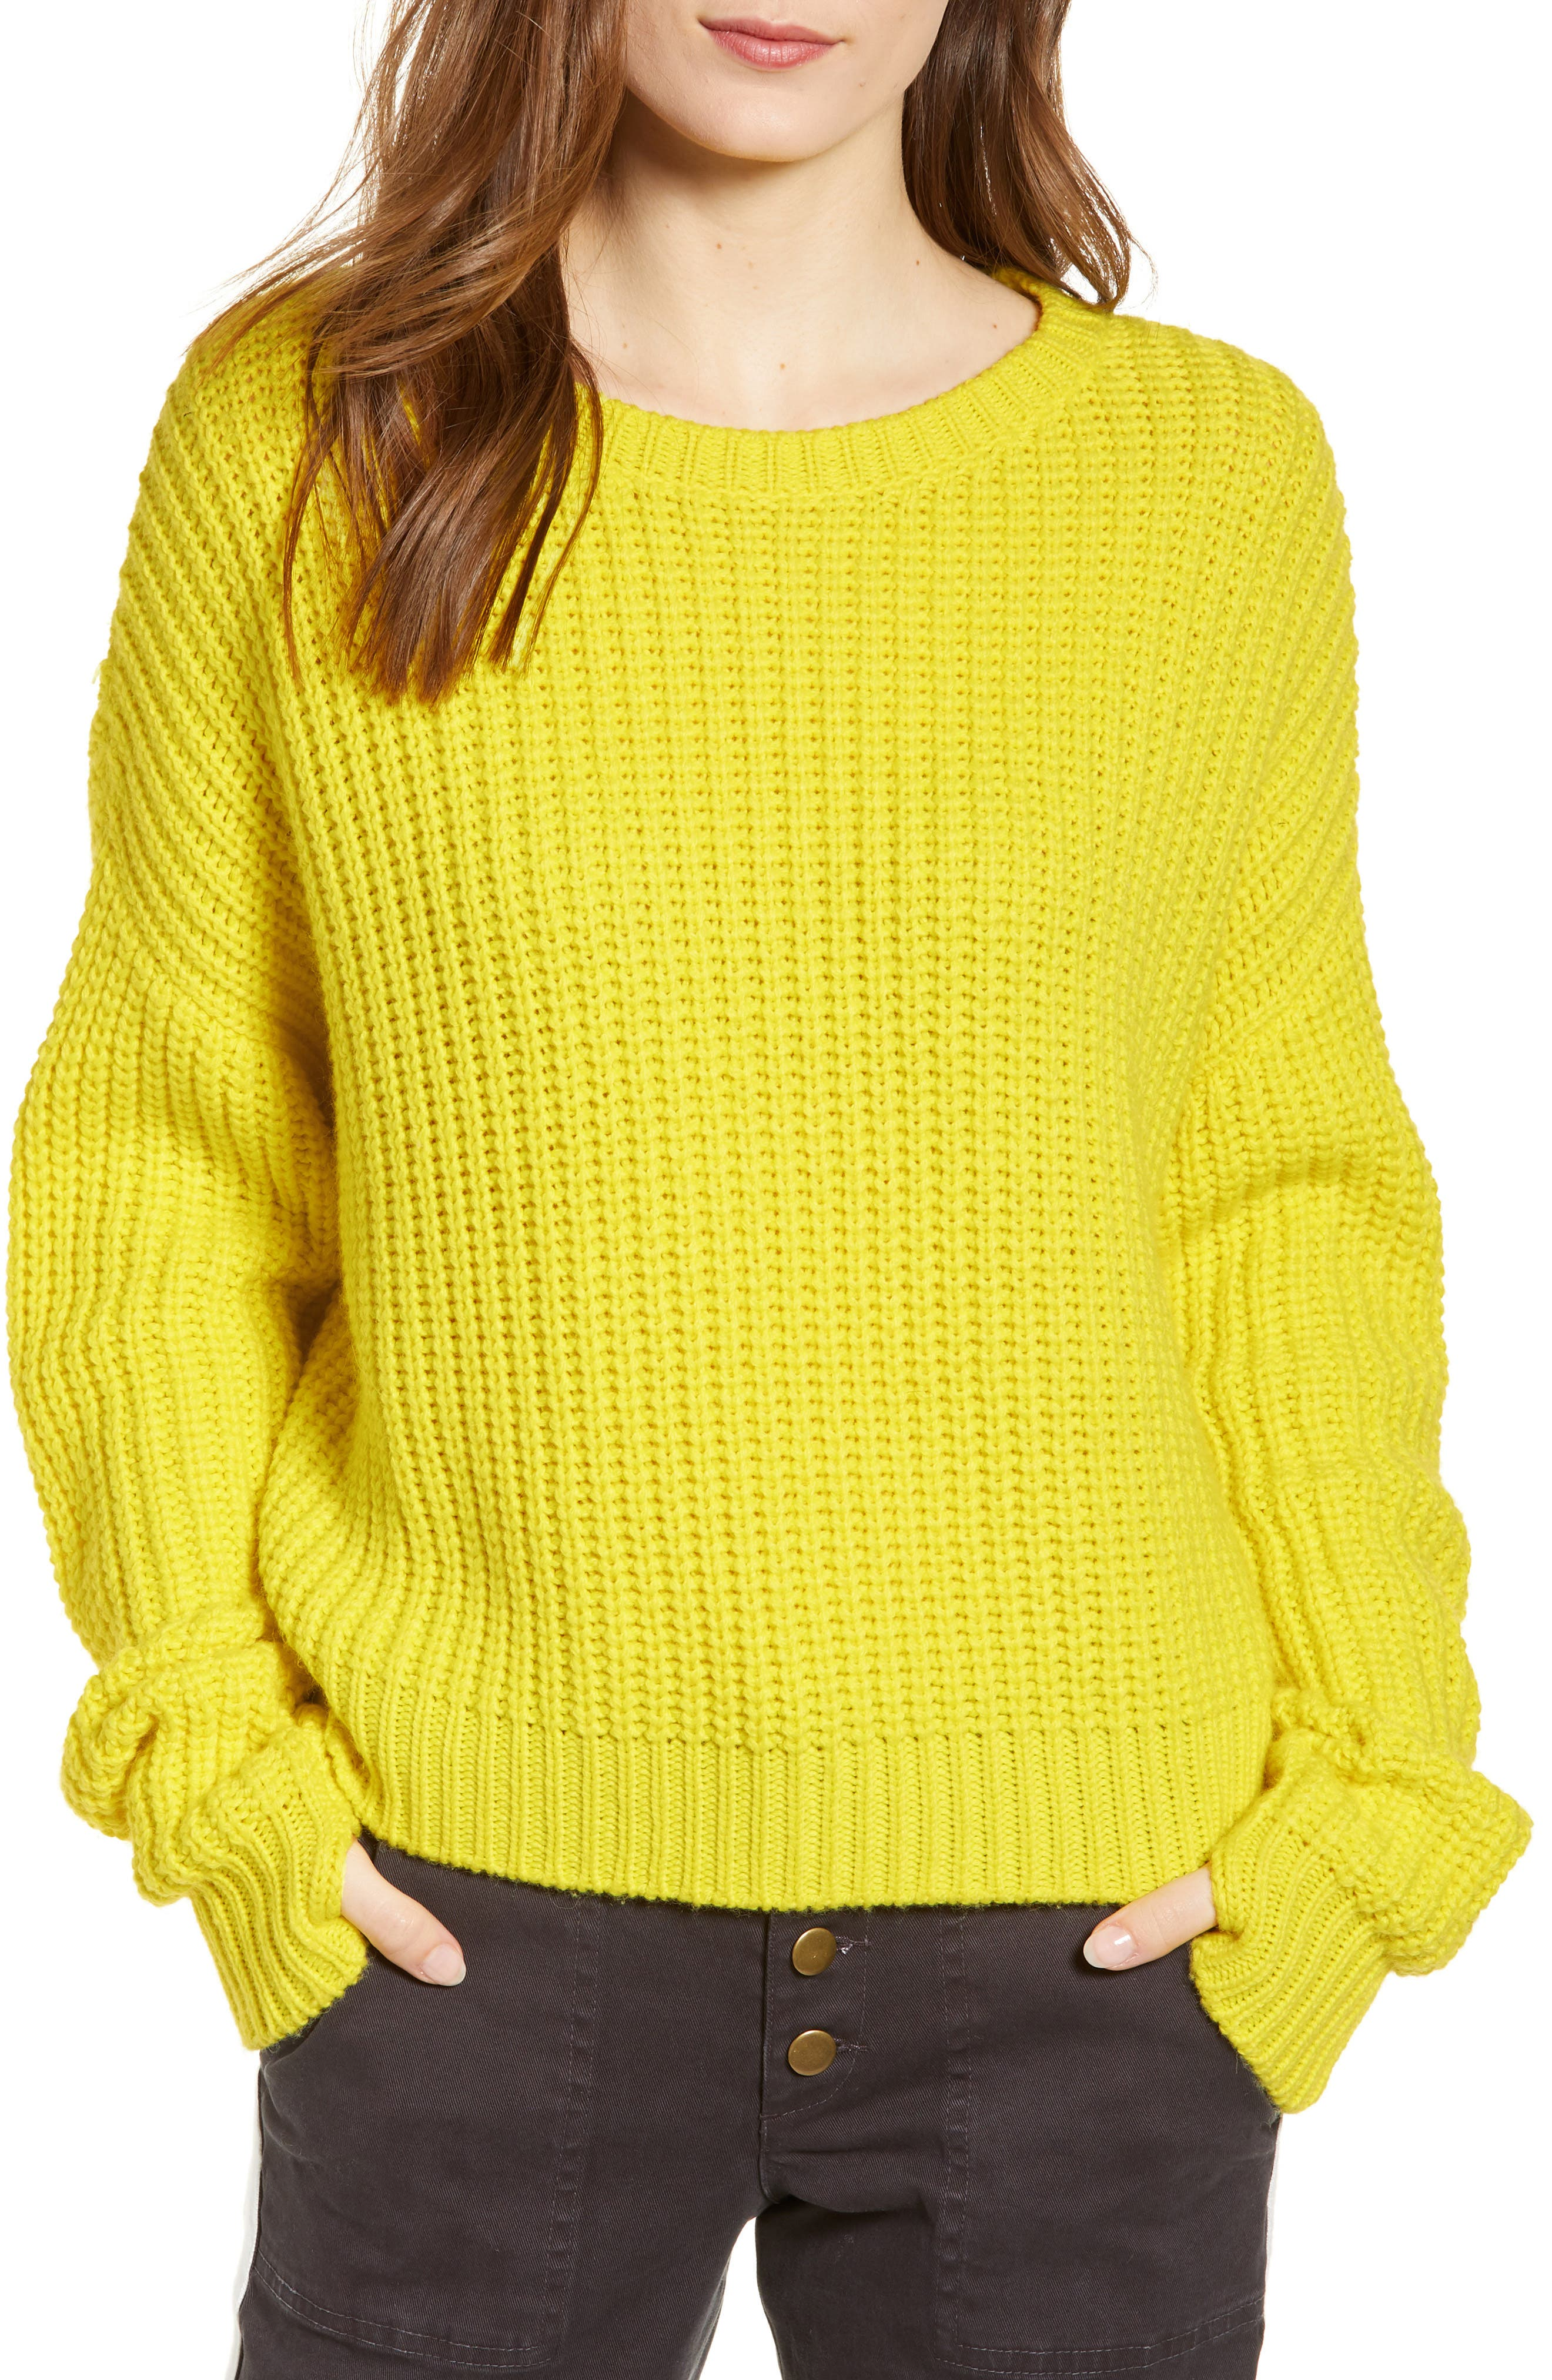 PAM & GELA High/Low Sweater, Main, color, 729